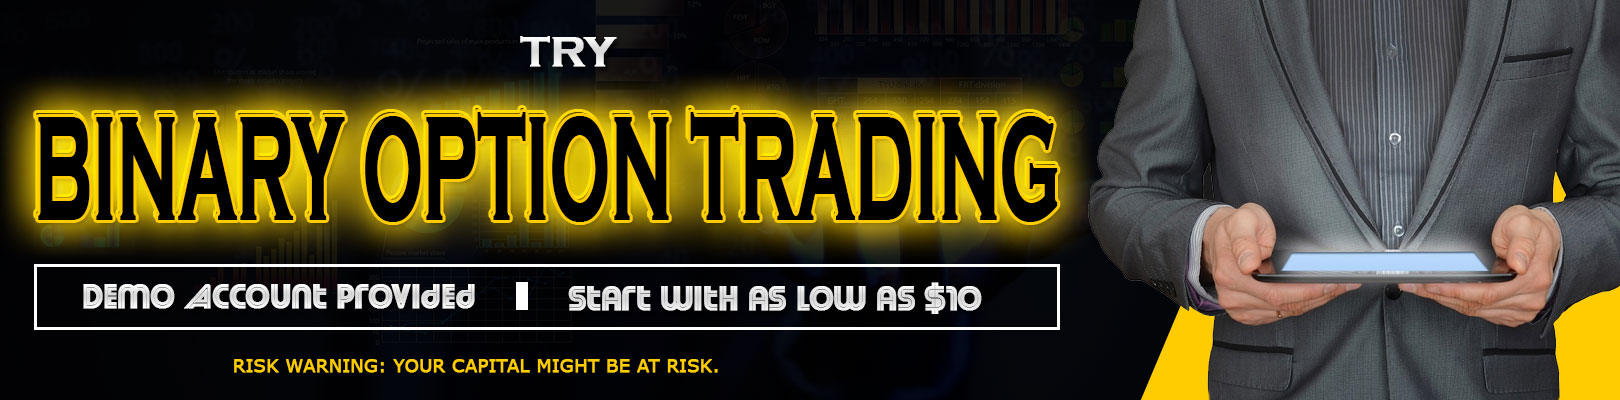 learn binary option trading online